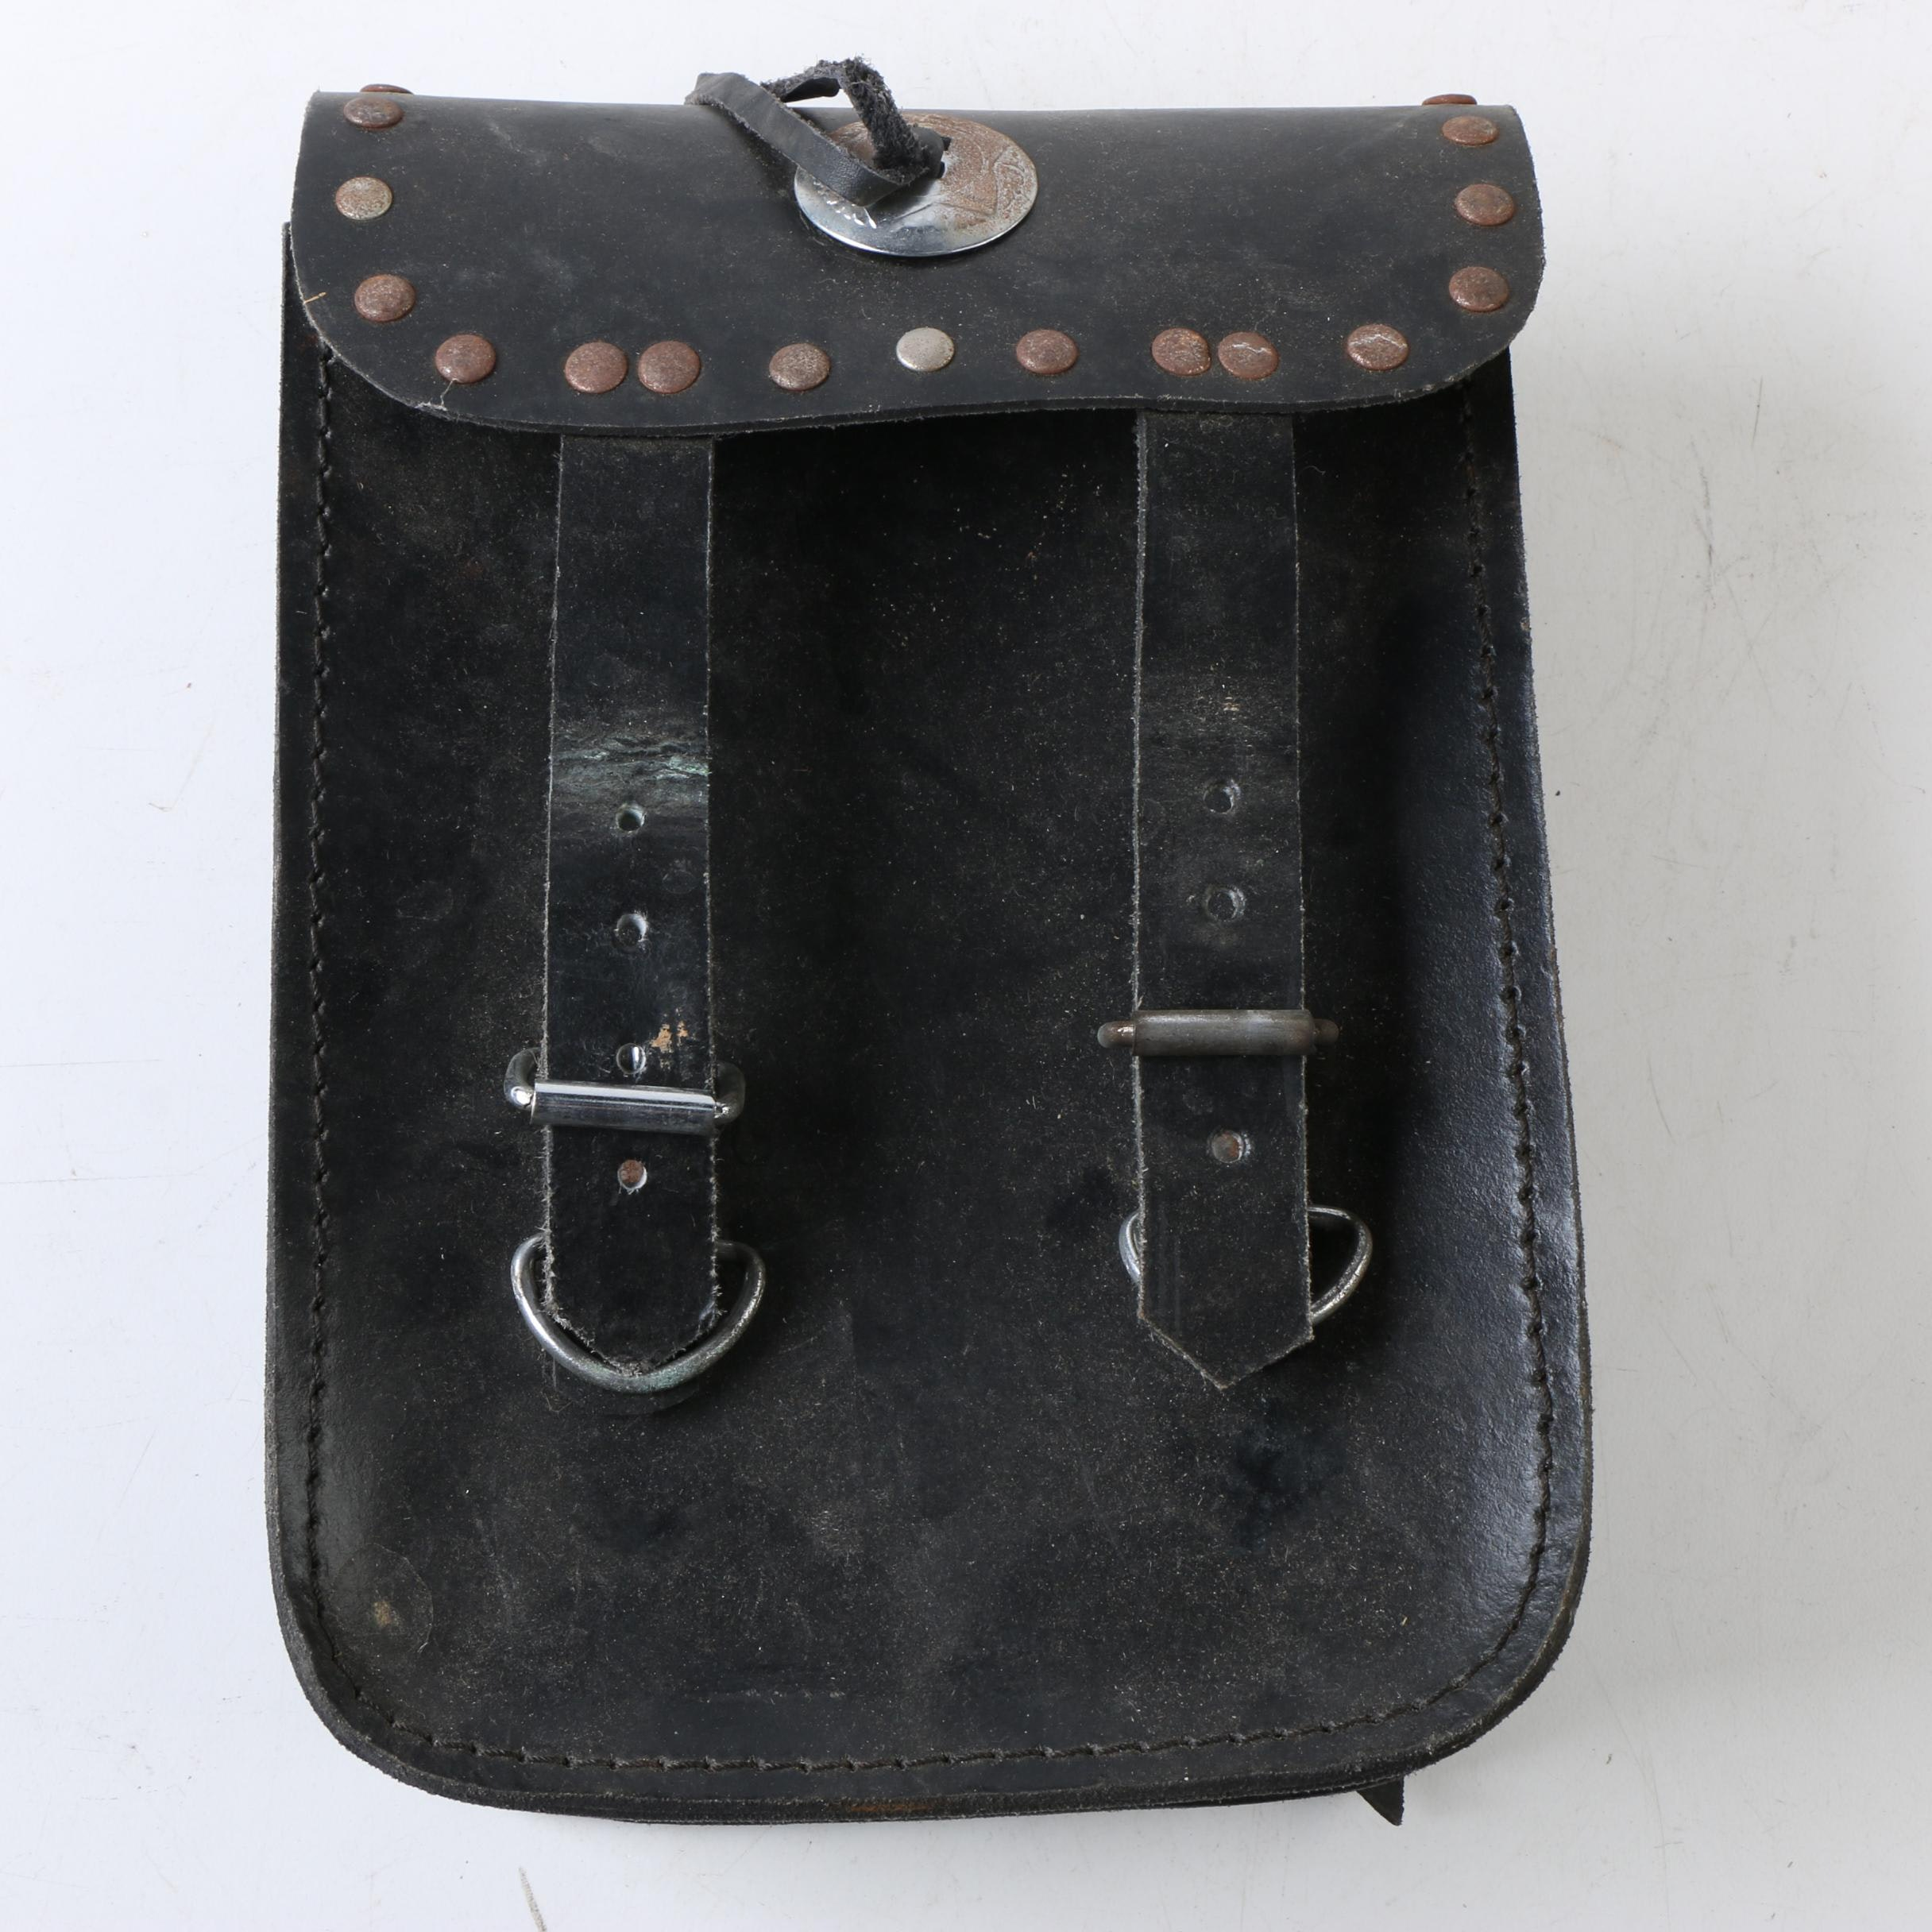 Vintage Black Leather Motorcycle Saddlebag with Silver Tone Concho and Trim